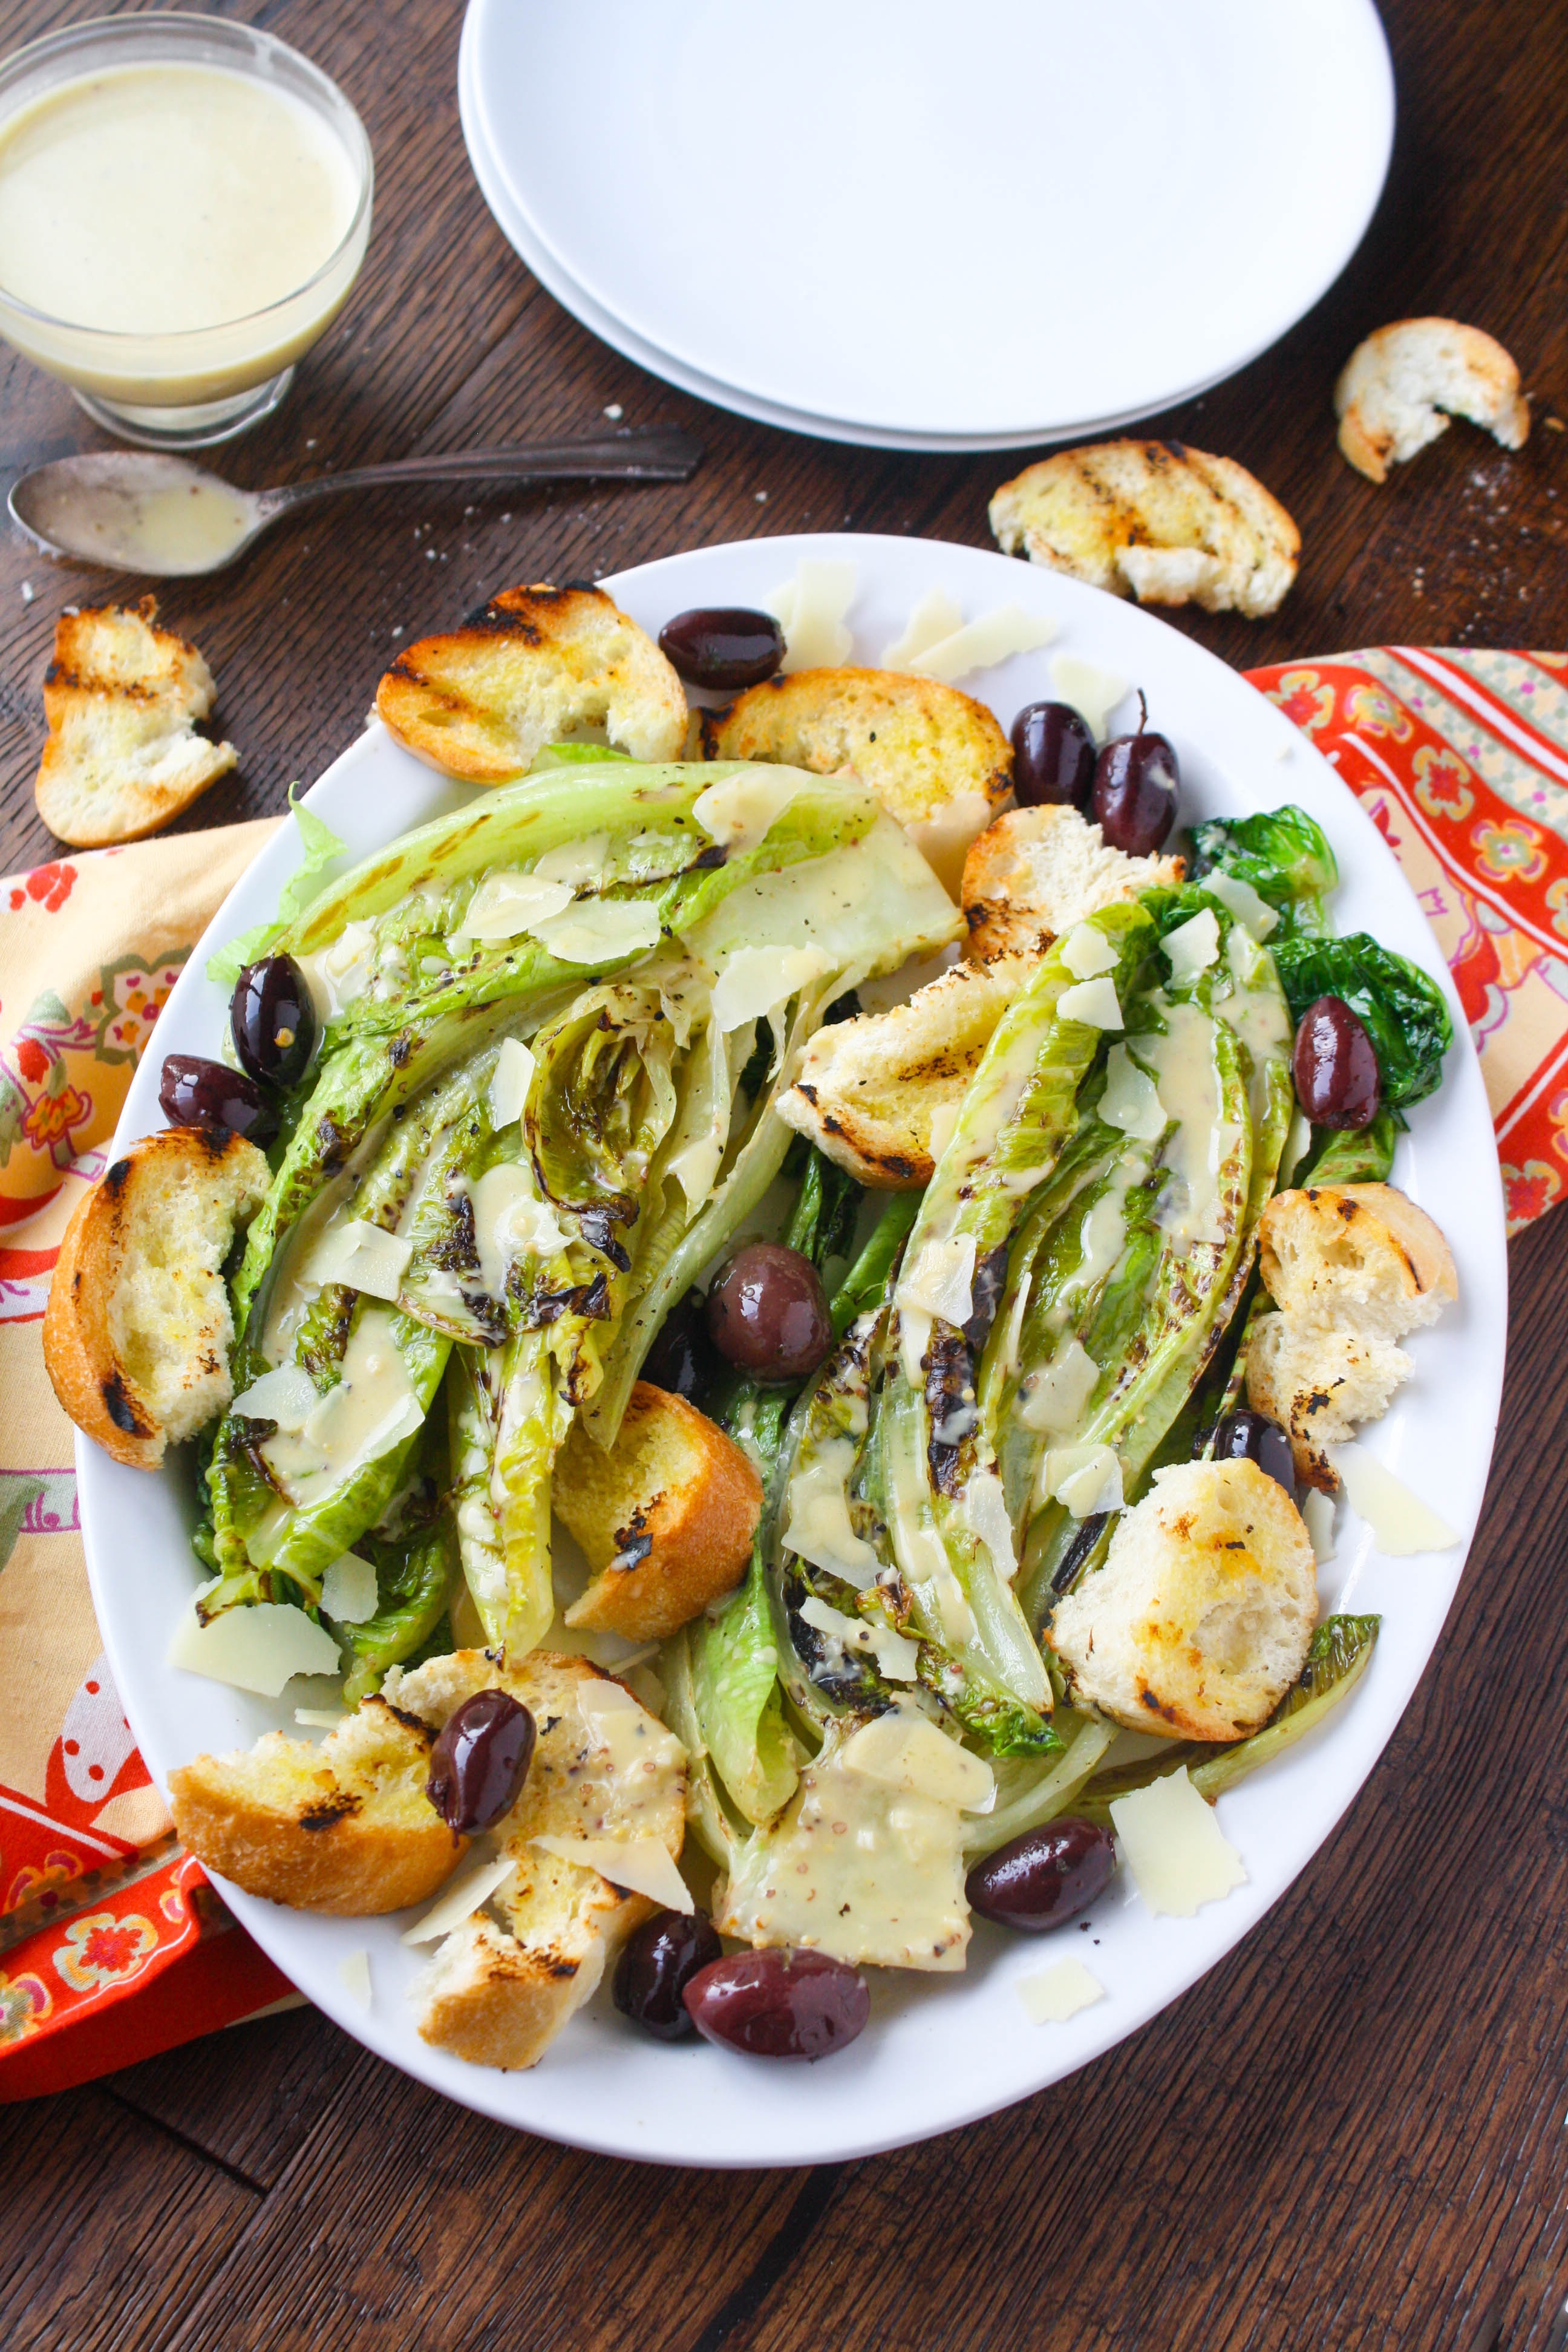 Grilled Romaine Salad with Caesar Dressing is a fun salad any time of year. You'll love the flavor grilling adds, and the dressing is delicious (with no egg included)!